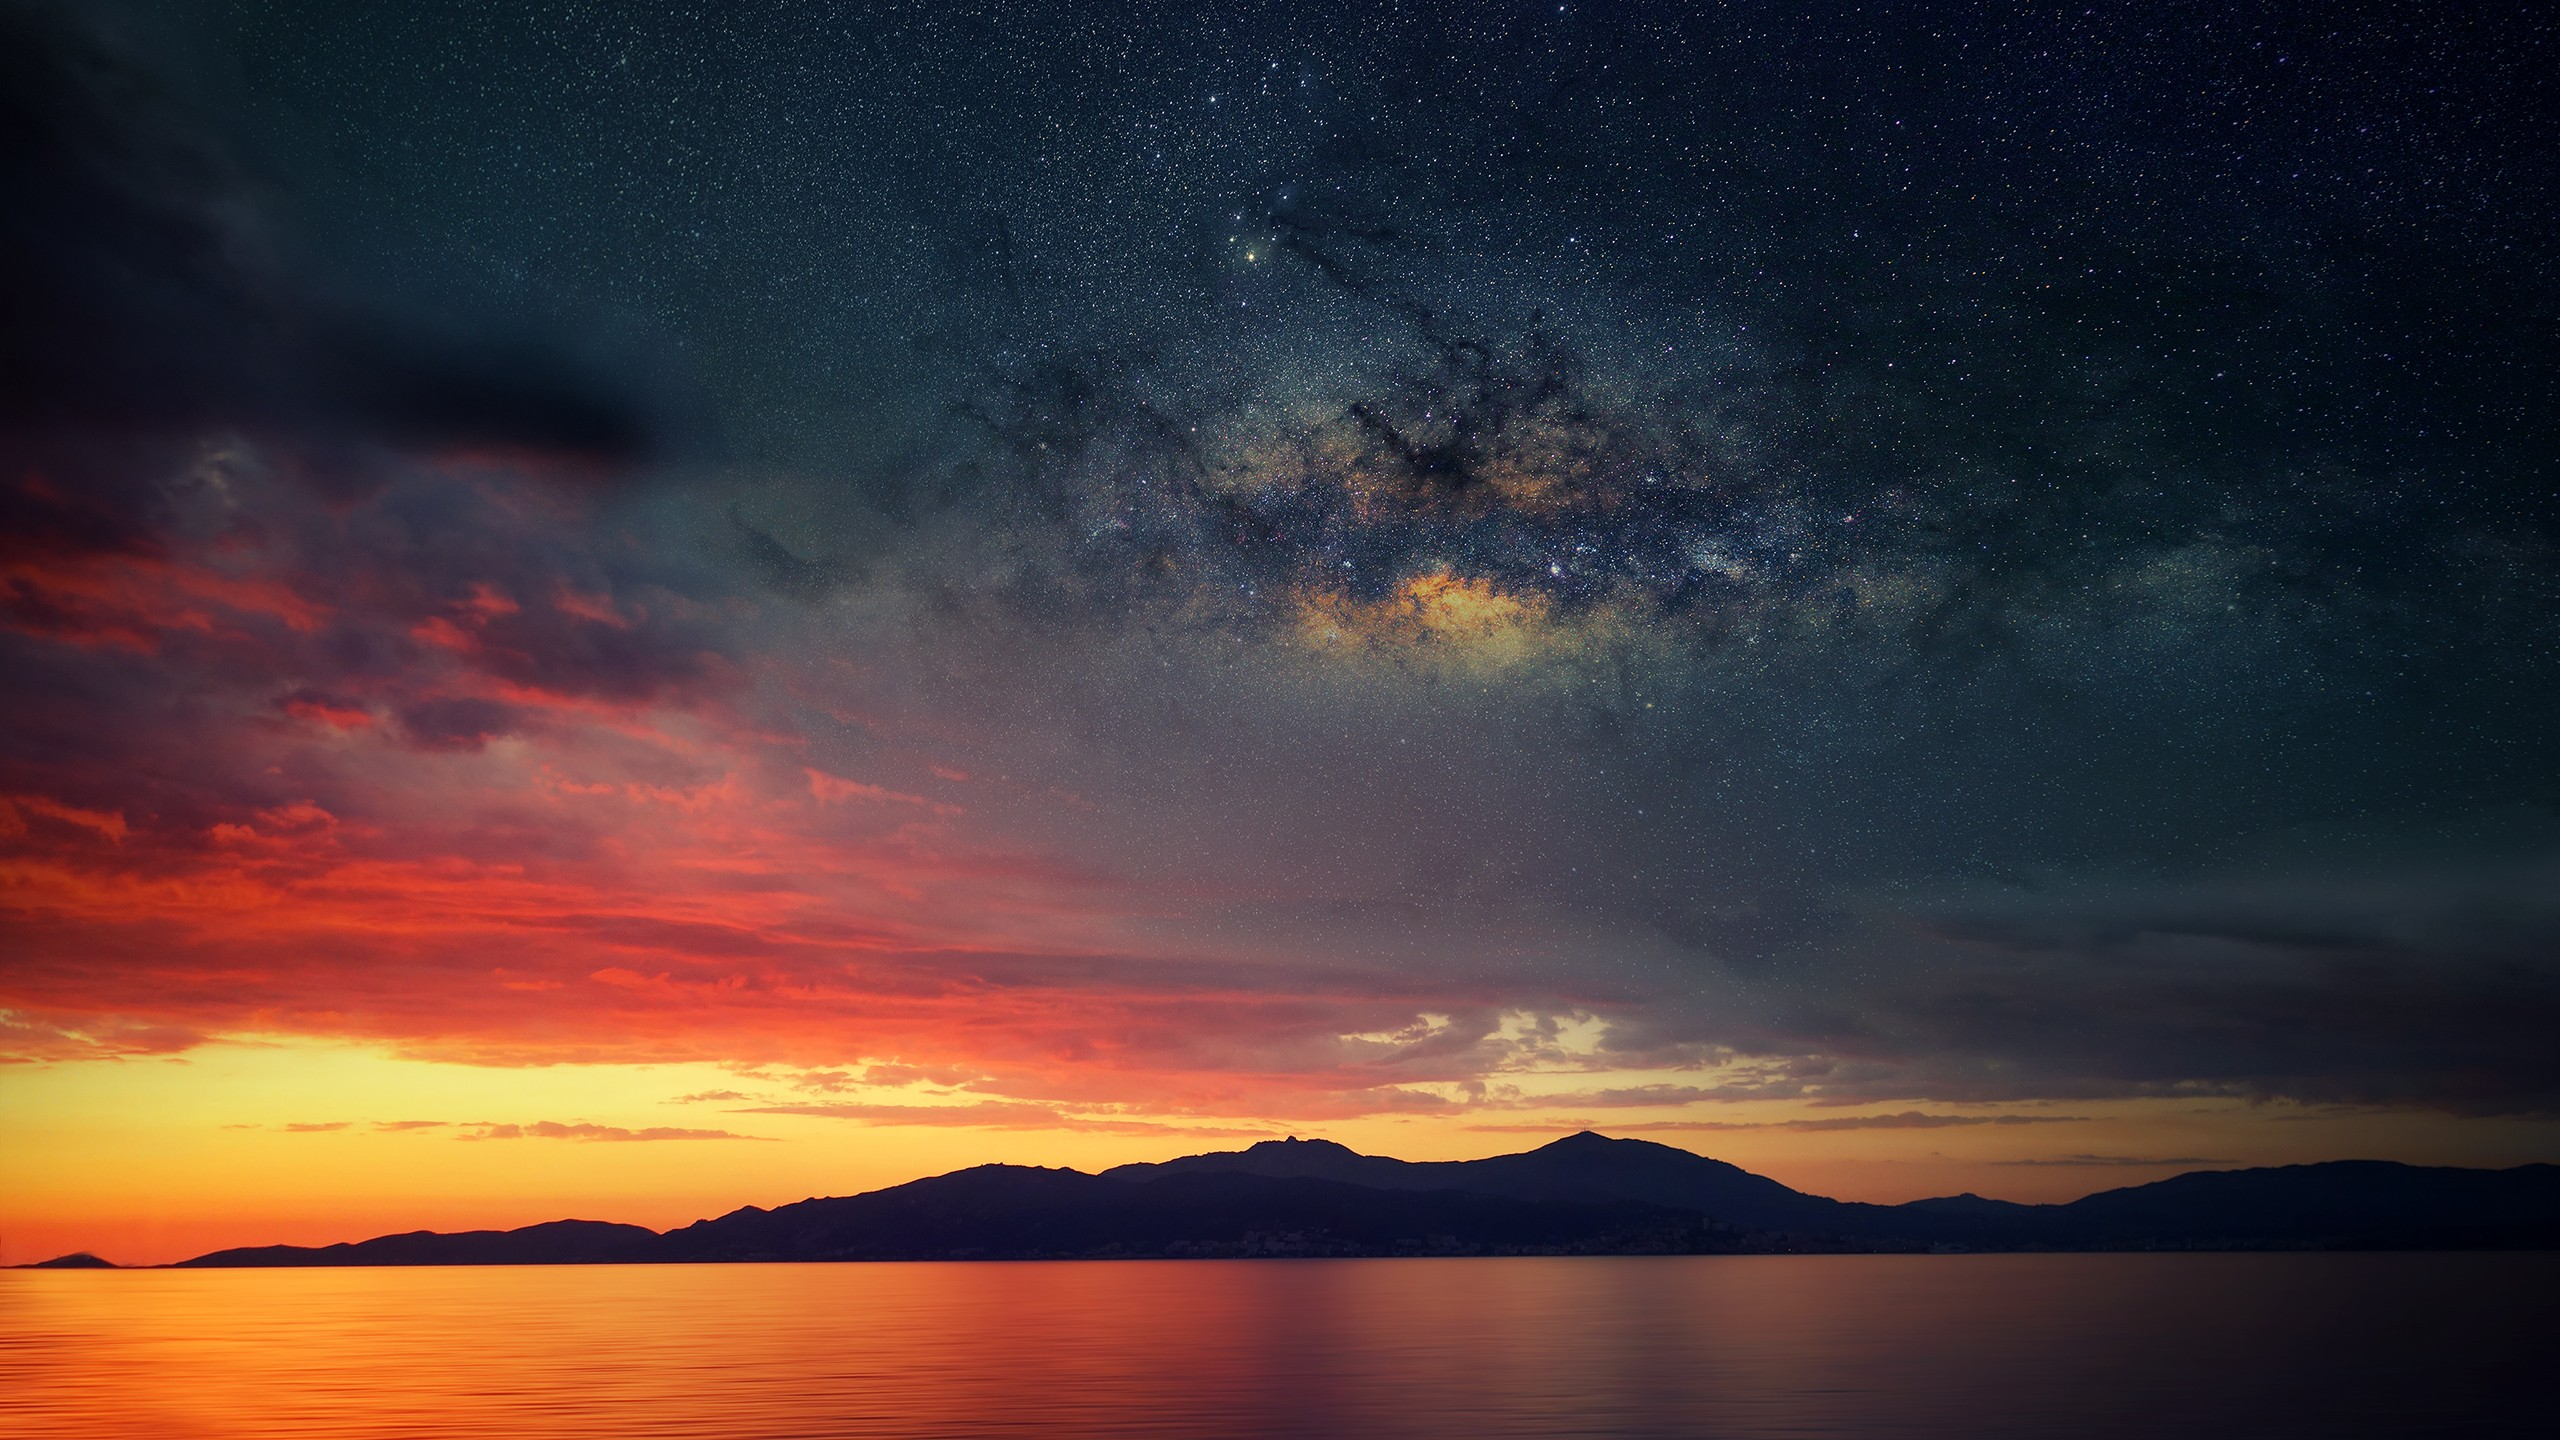 48+ 2560x1440 Wallpapers ·① Download Free Amazing Full HD